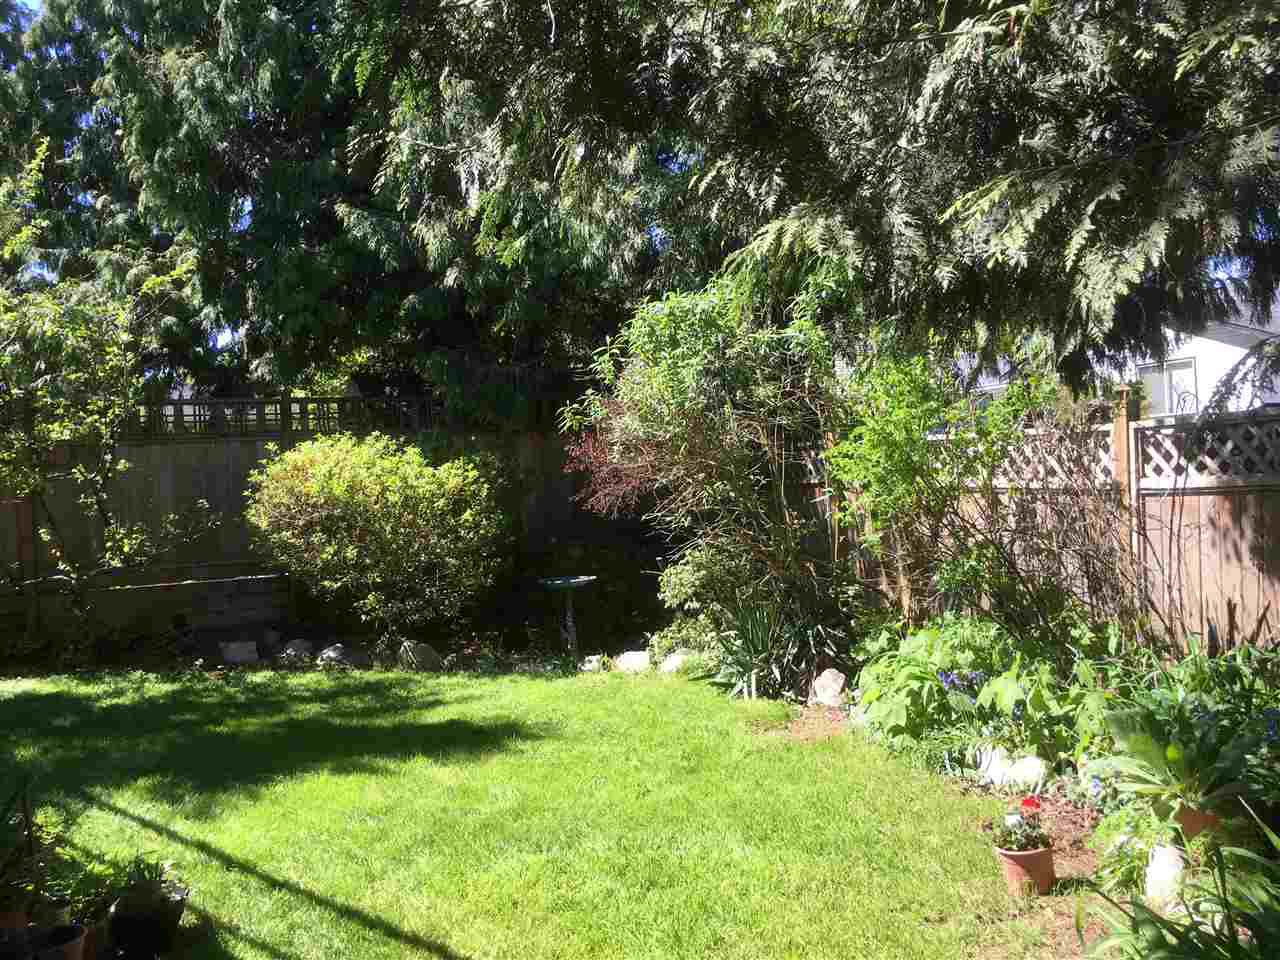 """Photo 13: Photos: 1958 158A Street in Surrey: King George Corridor House 1/2 Duplex for sale in """"King George Corridor"""" (South Surrey White Rock)  : MLS®# R2368433"""